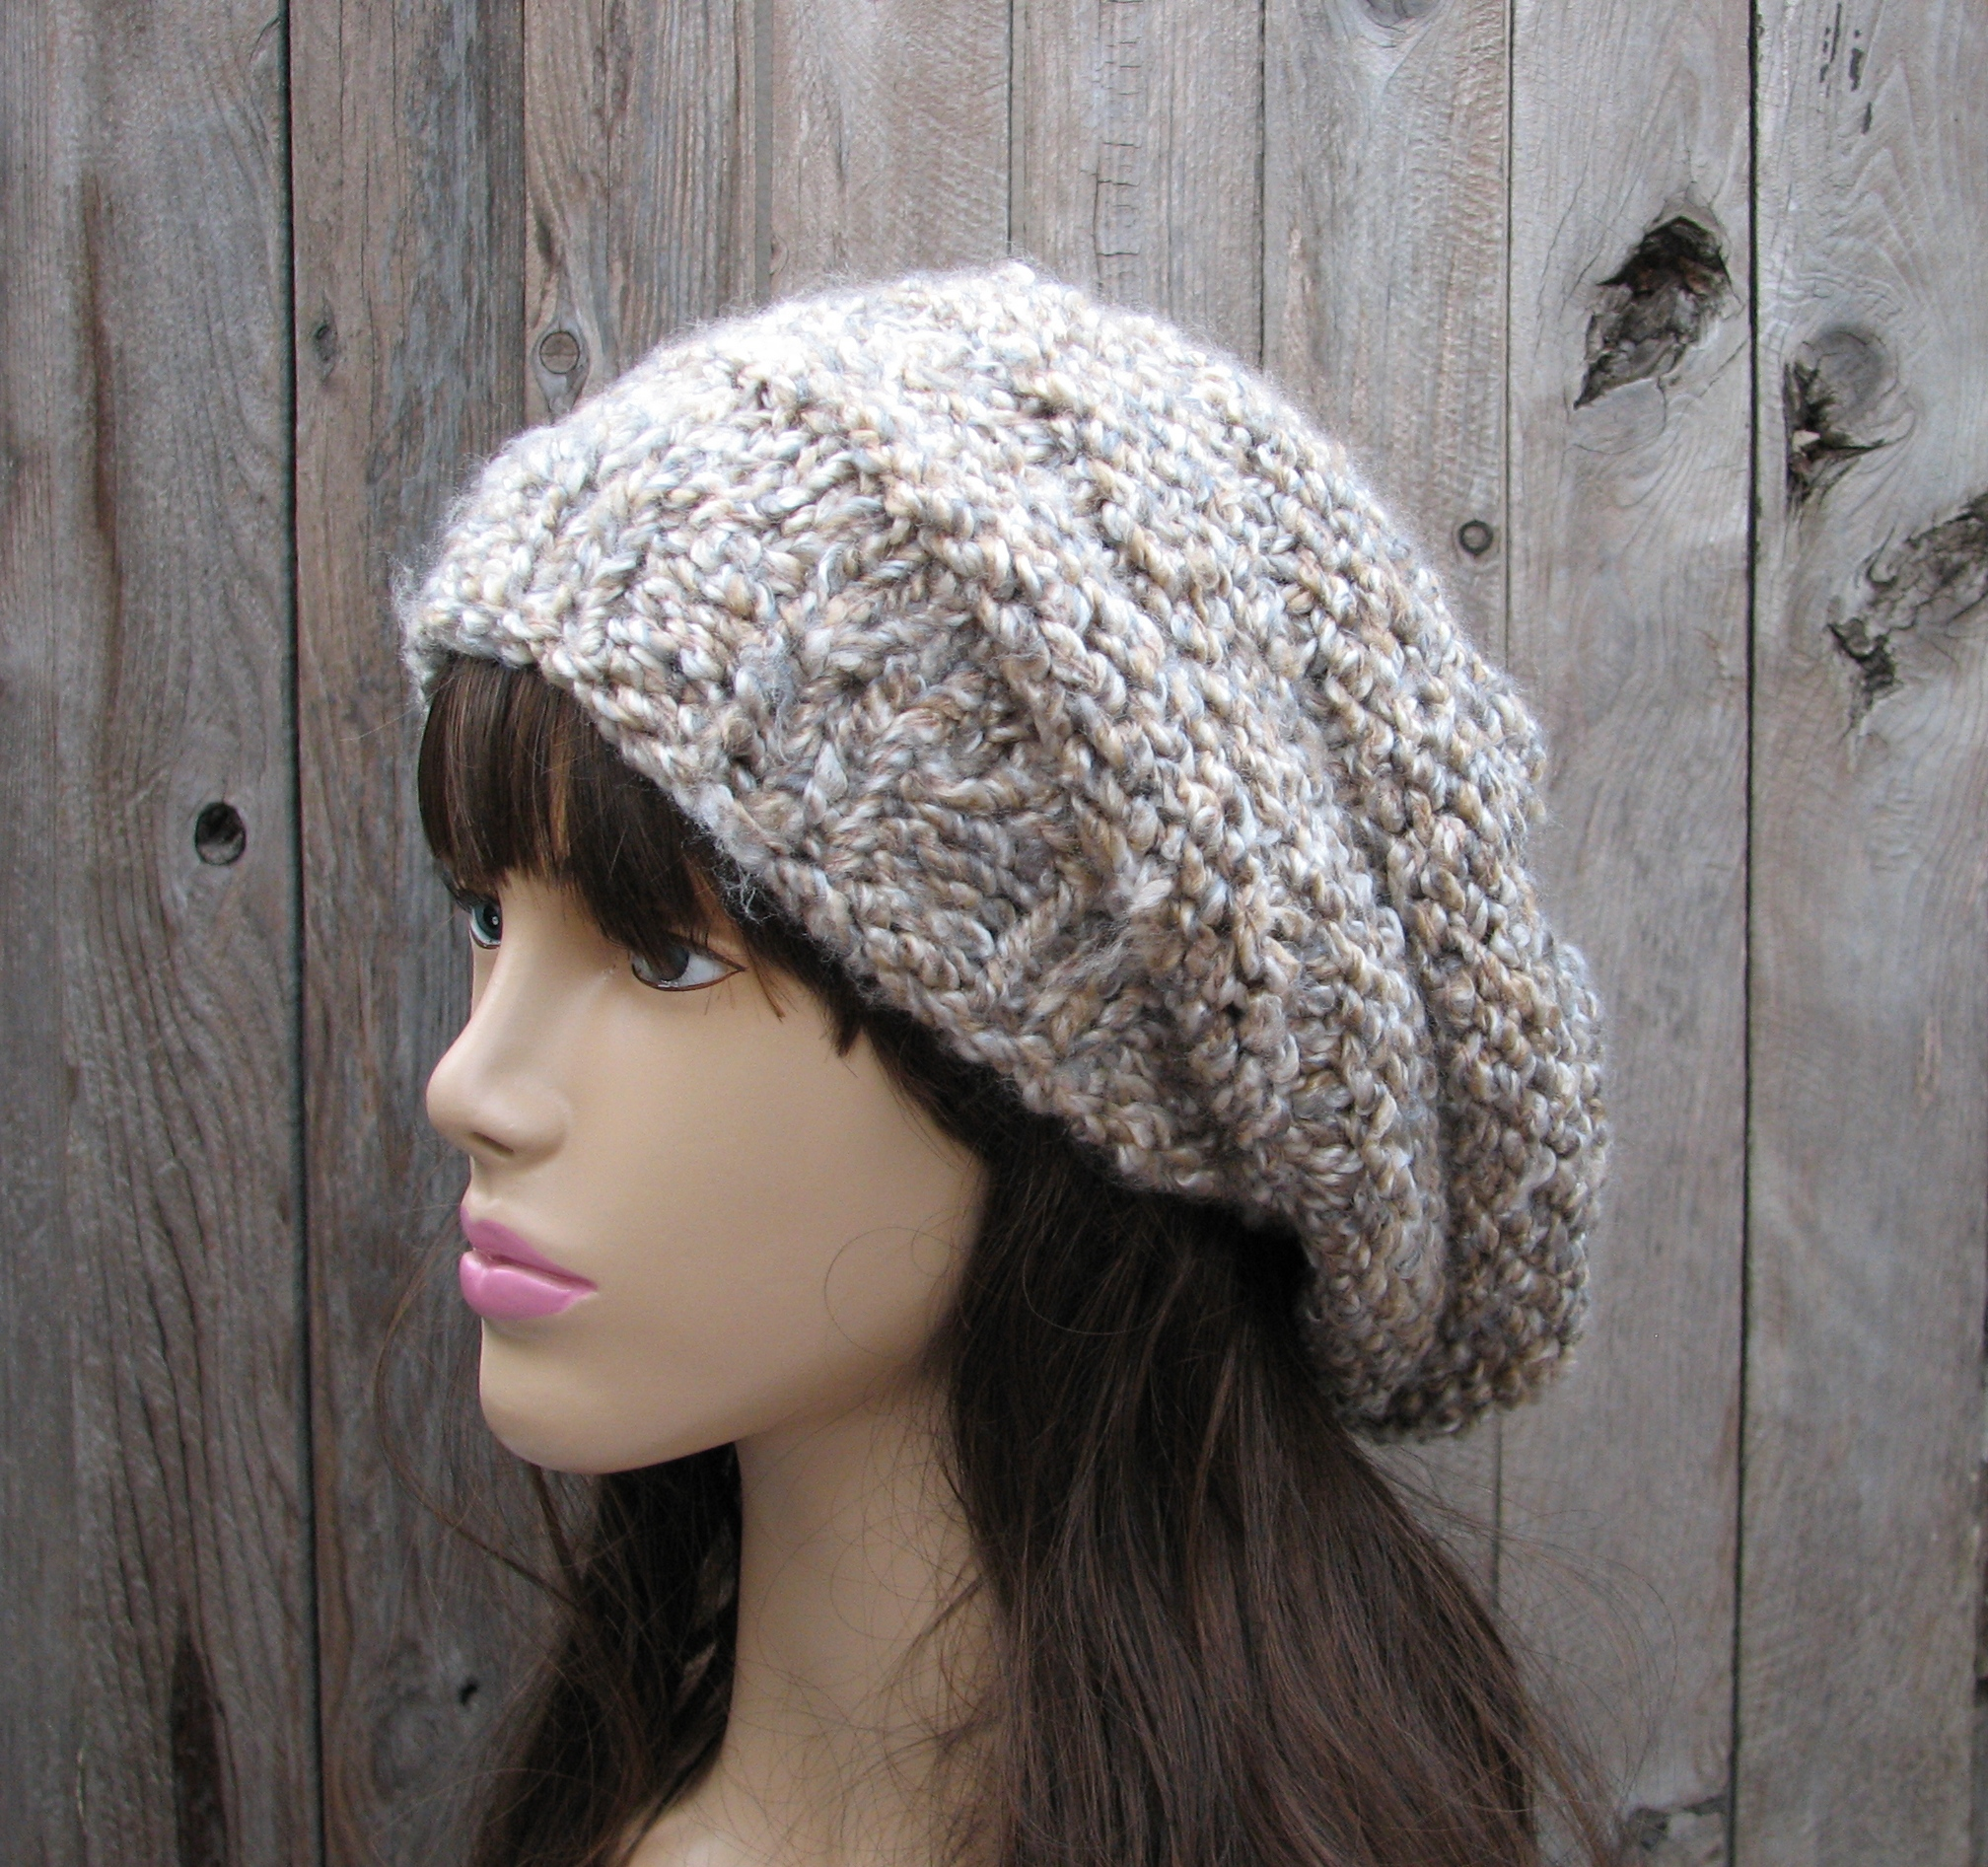 bbb40278cc4 Crochet Hat - Slouchy Hat -Multicolored - Winter Accessories Autumn  Accessories Fall Fashion on Luulla